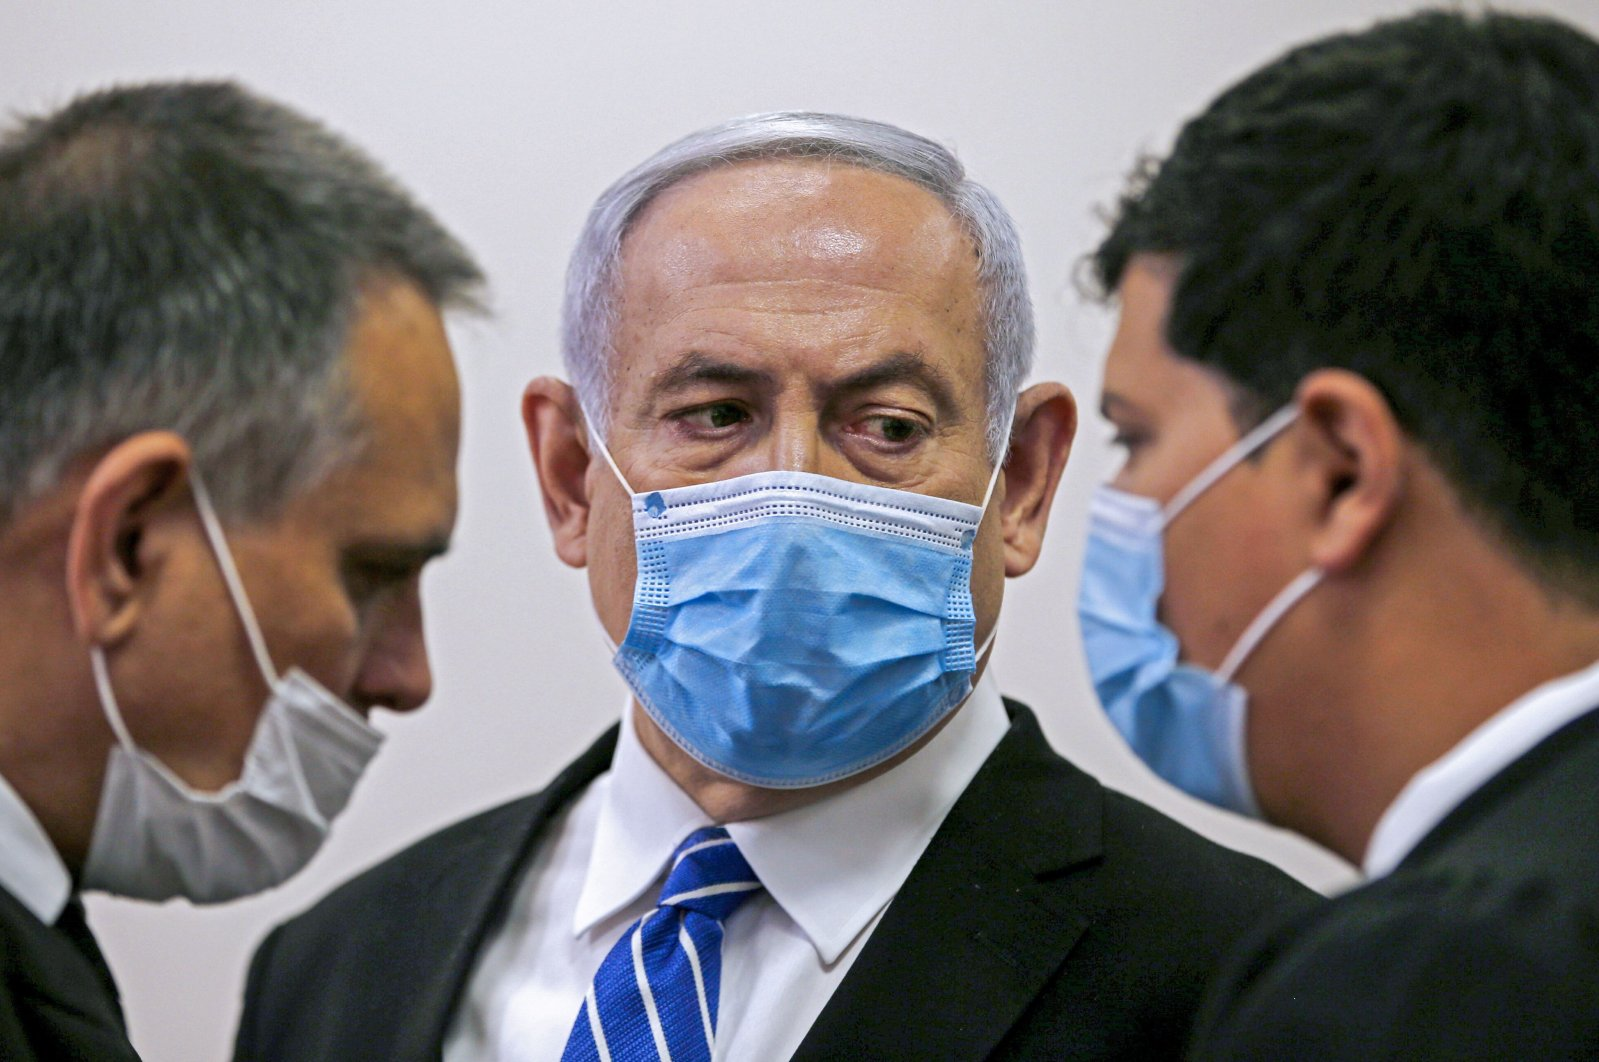 Israeli Prime Minister Benjamin Netanyahu (C), wearing a protective face mask, speaks with his lawyer inside a courtroom during the first day of his corruption trial, Jerusalem, May 24, 2020.  (AFP Photo)